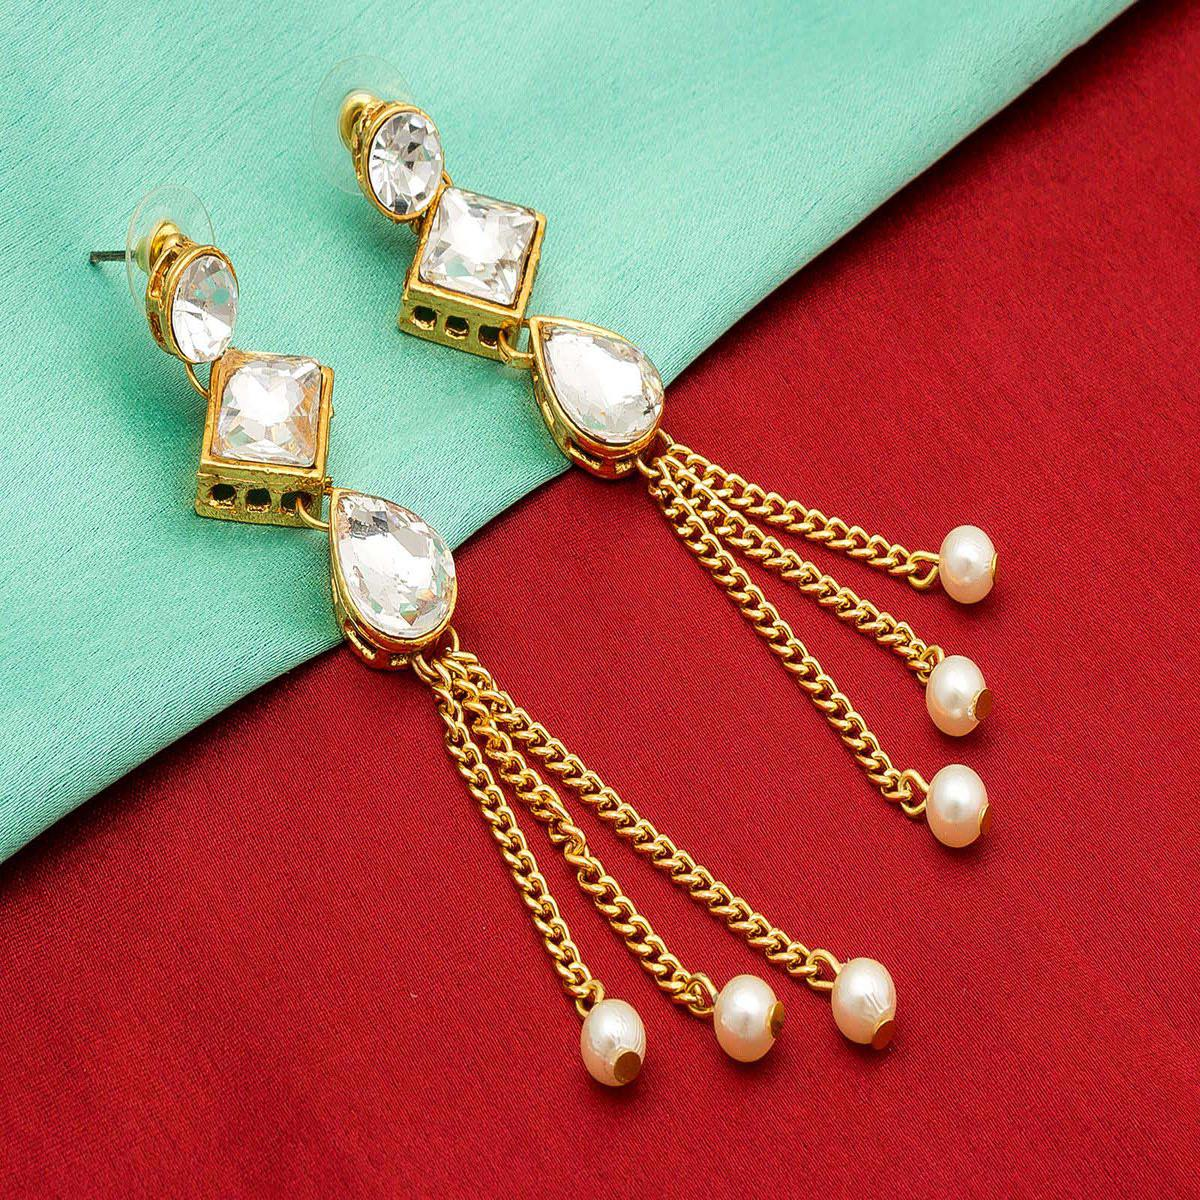 Starring Golden Colored Mix Metal & Stone Work Earrings Set